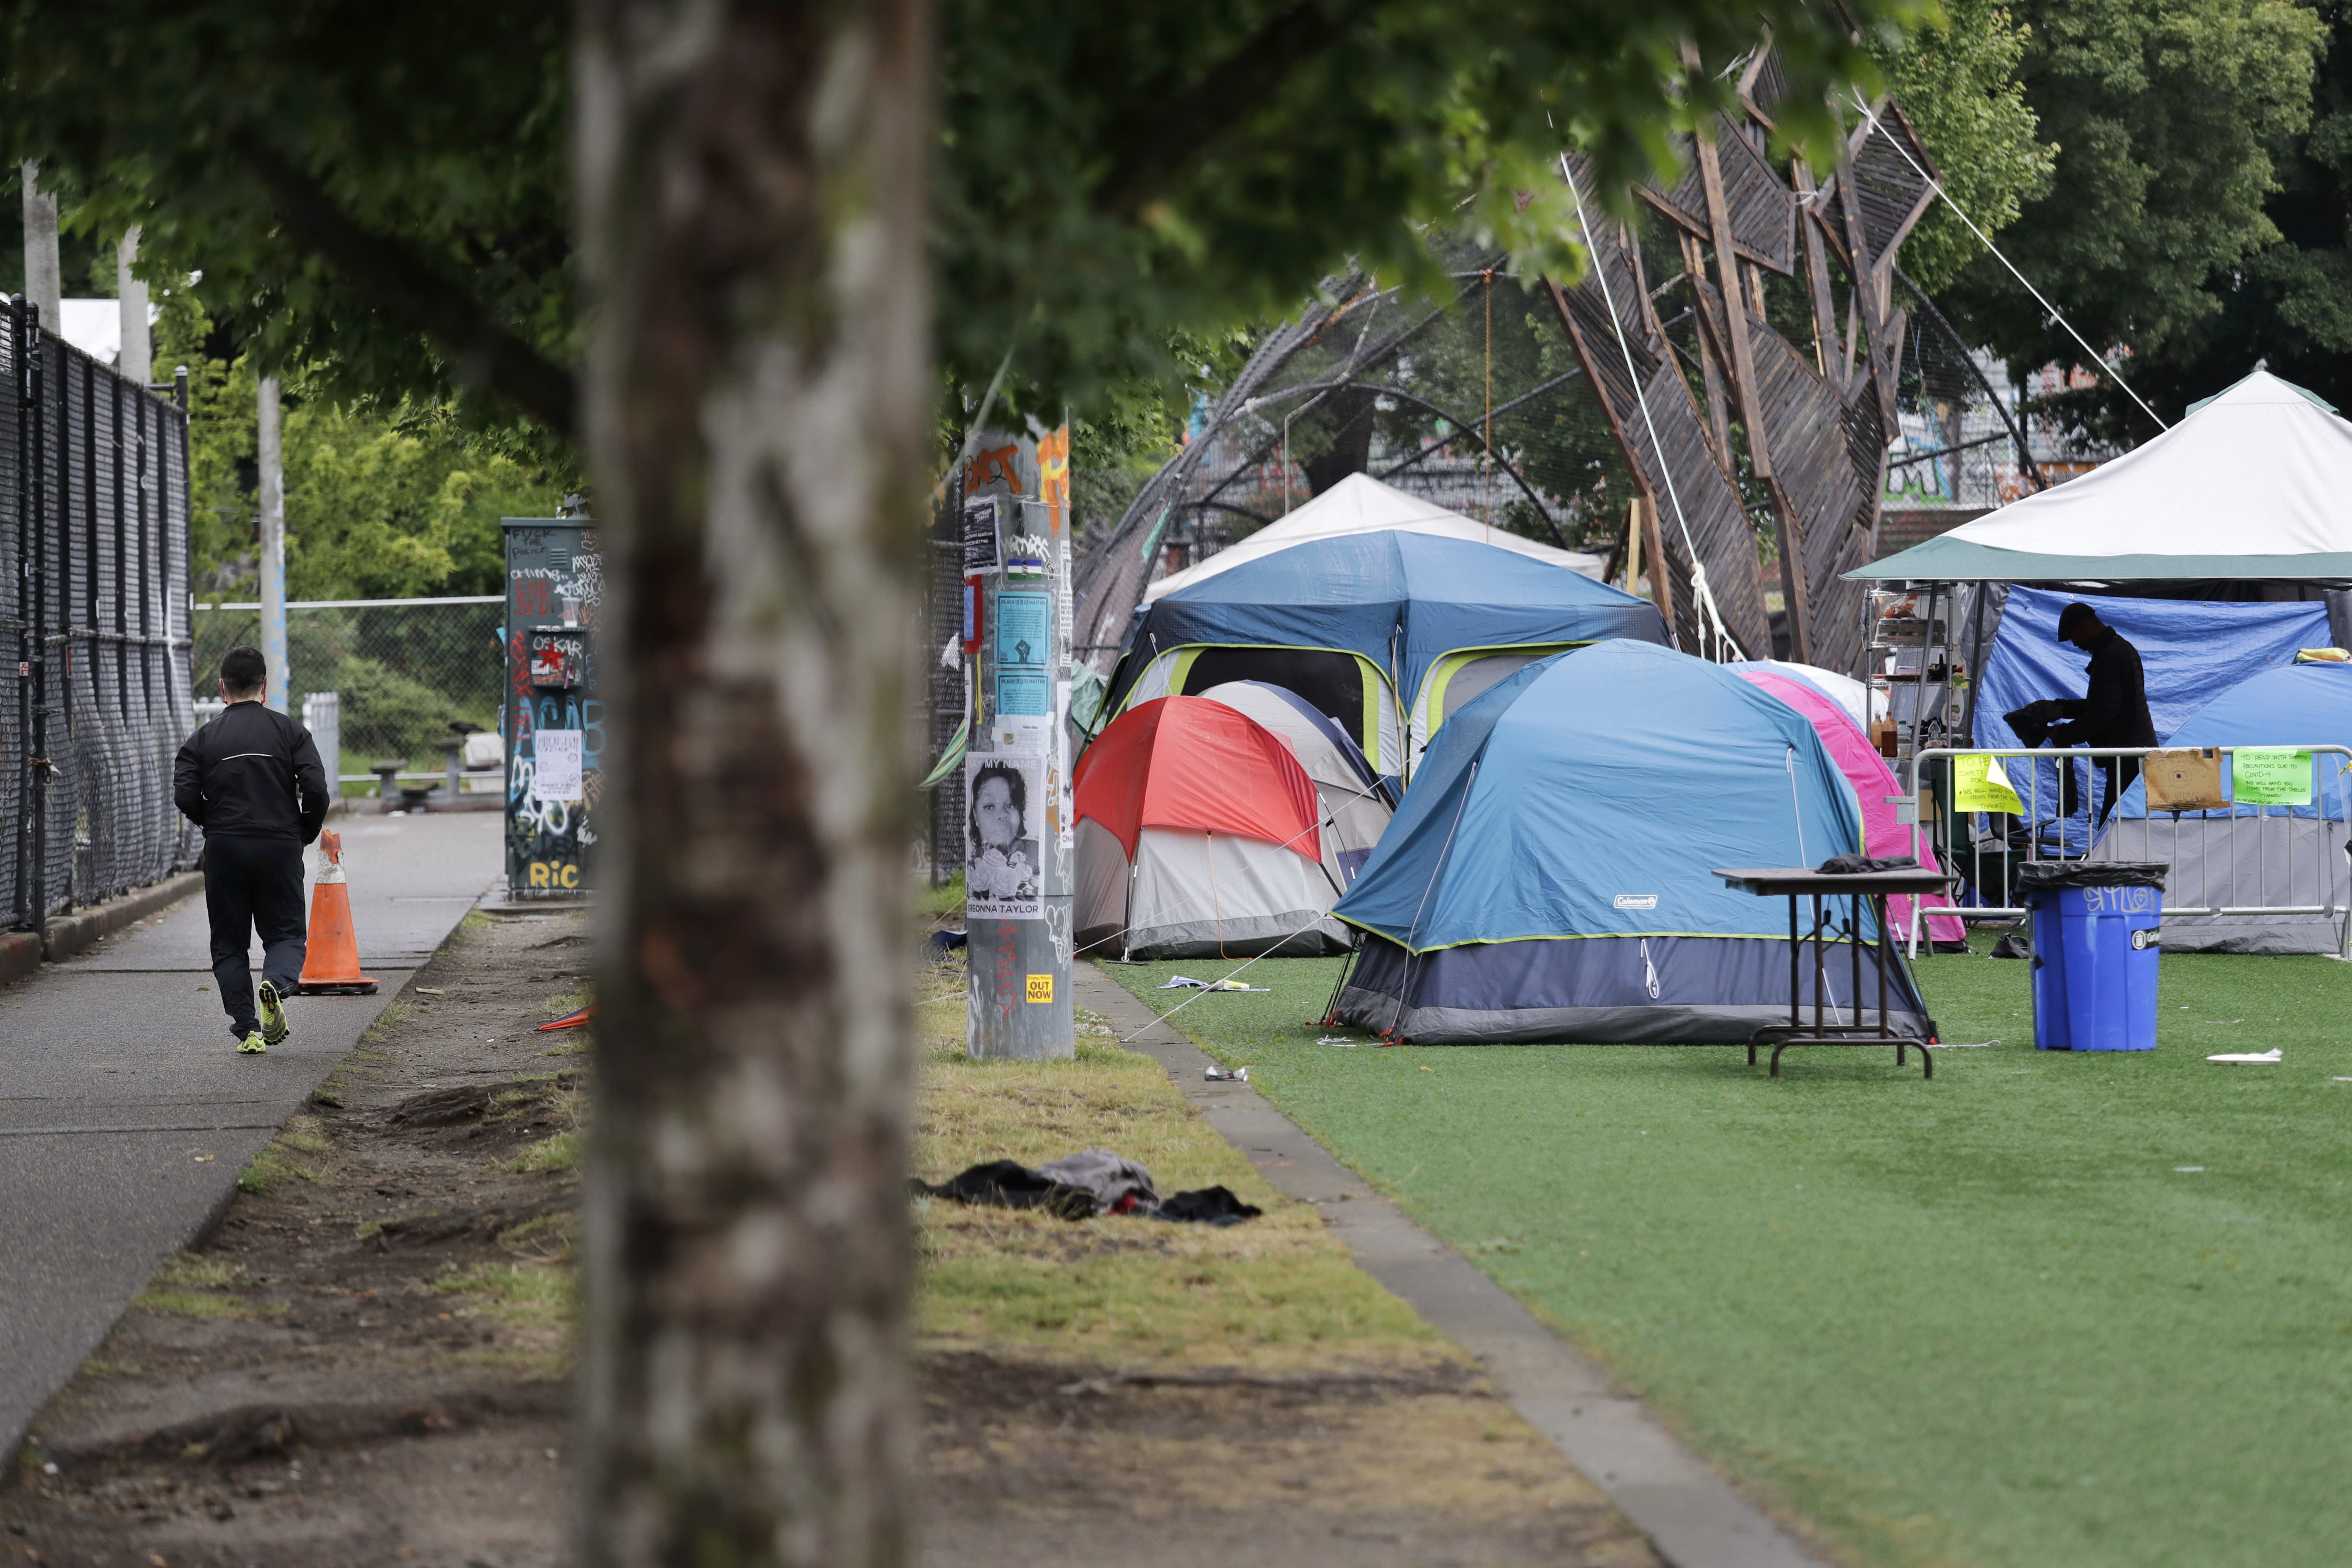 A jogger, left, runs past tents set-up on a play field in a city park Sunday, June 28, 2020, in Seattle, where several streets are blocked off in what has been named the Capitol Hill Occupied Protest zone. Seattle Mayor Jenny Durkan met with demonstrators Friday after some lay in the street or sat on barricades to thwart the city's effort to dismantle the protest zone that has drawn scorn from President Donald Trump and a lawsuit from nearby businesses. (AP Photo/Elaine Thompson)